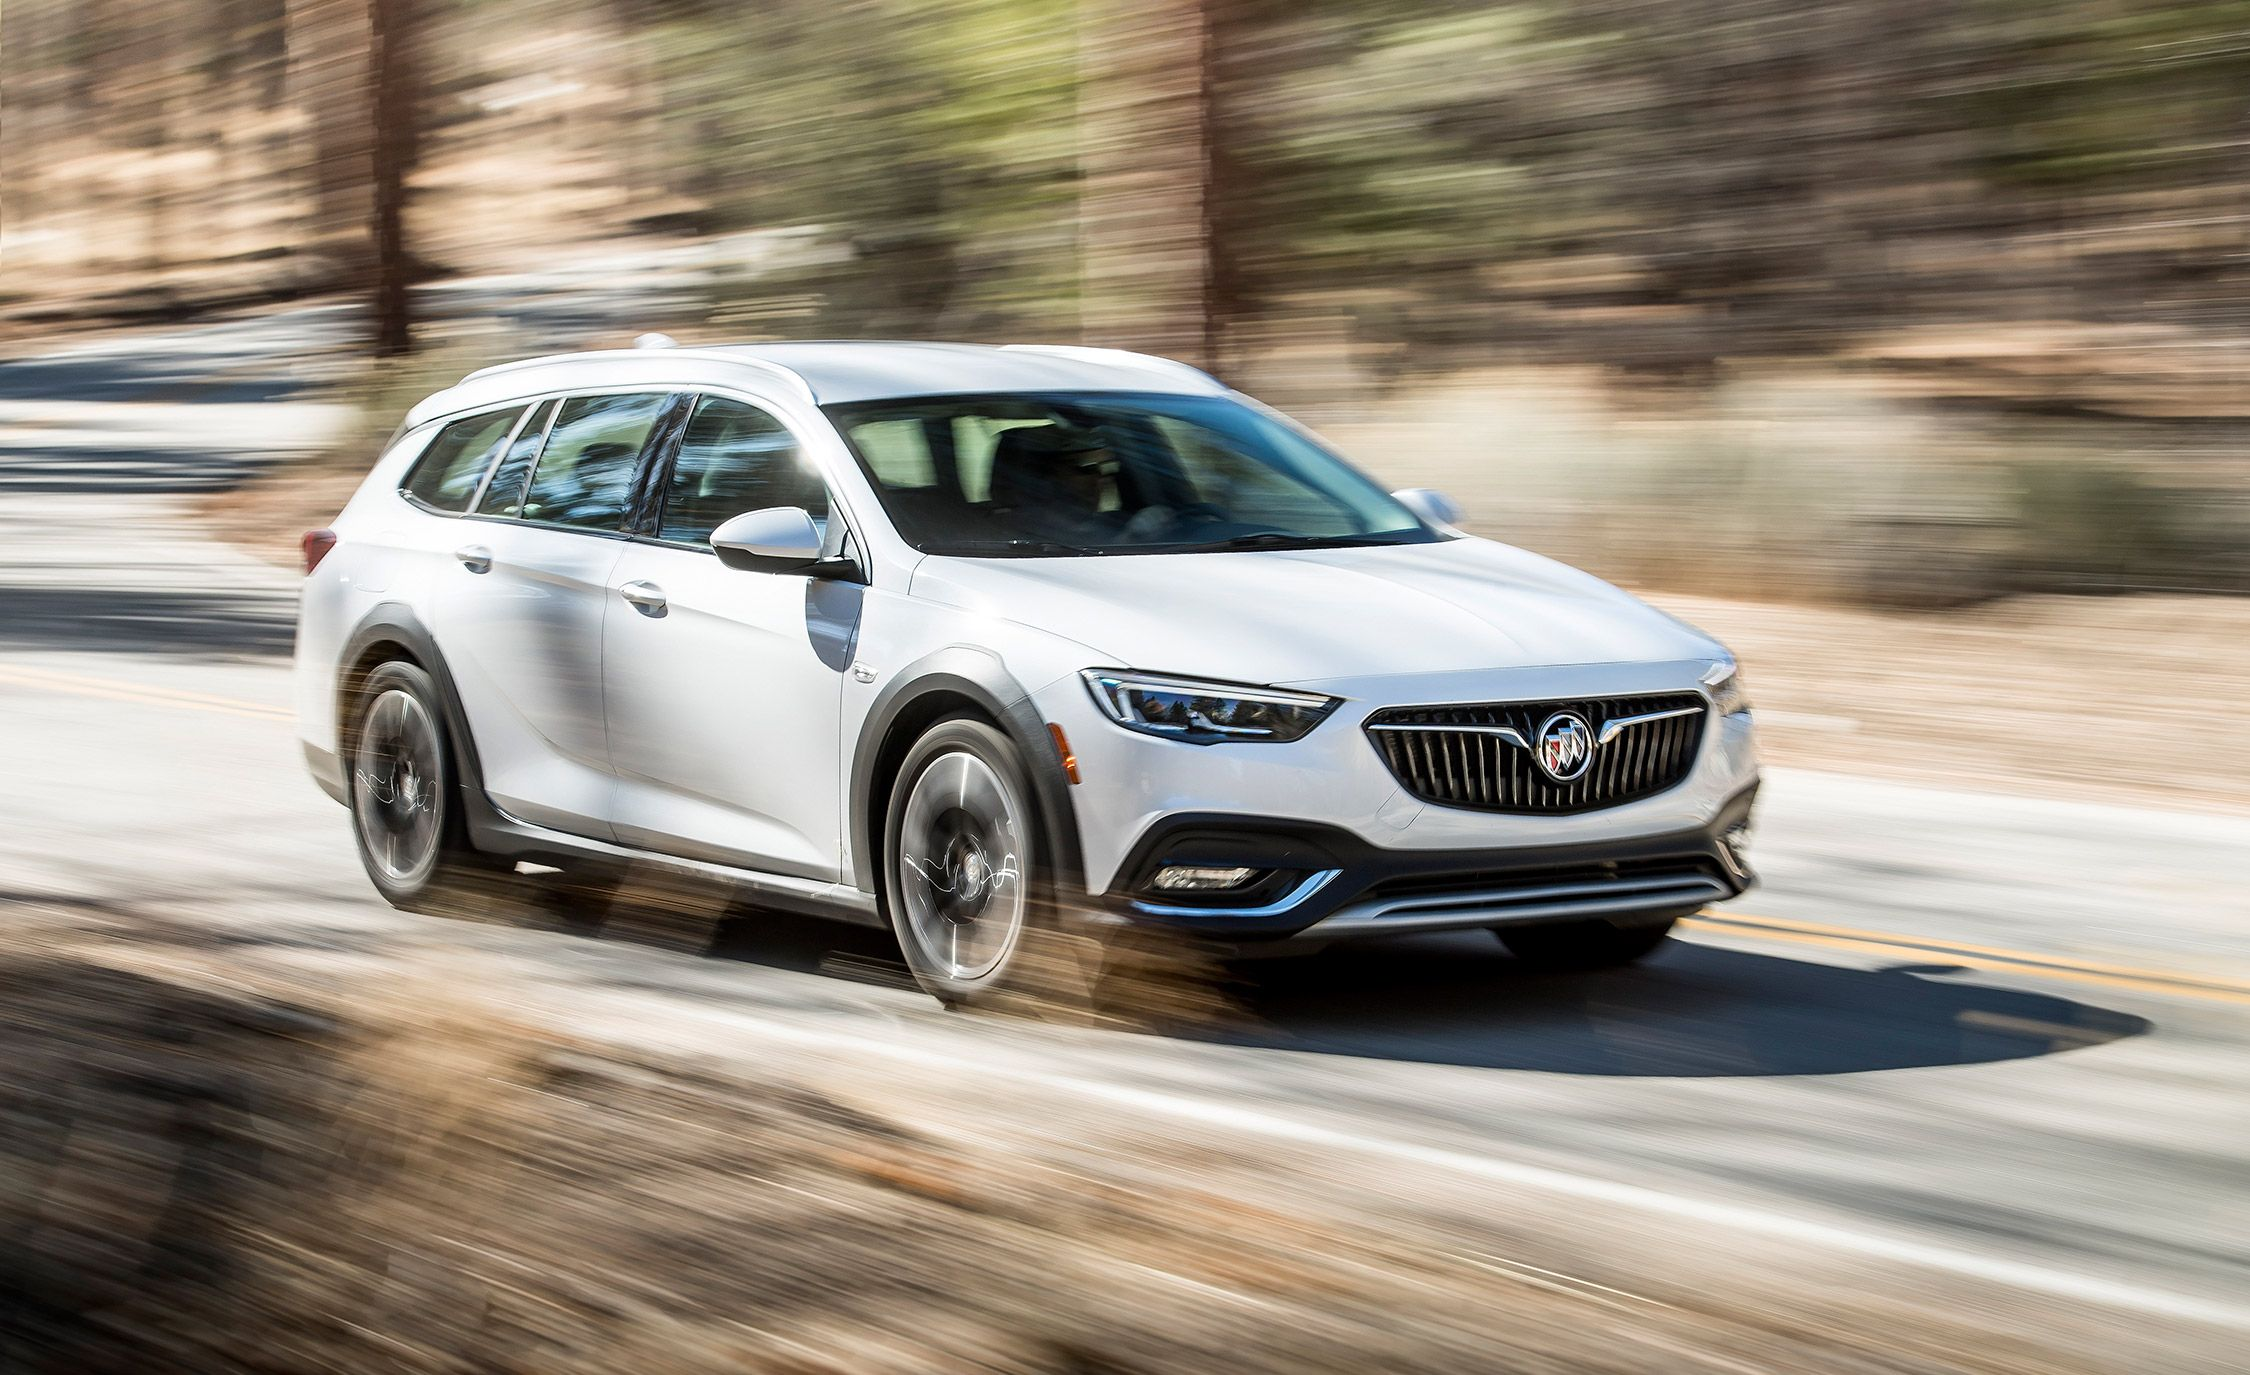 2019 Buick Regal TourX Reviews | Buick Regal TourX Price ...